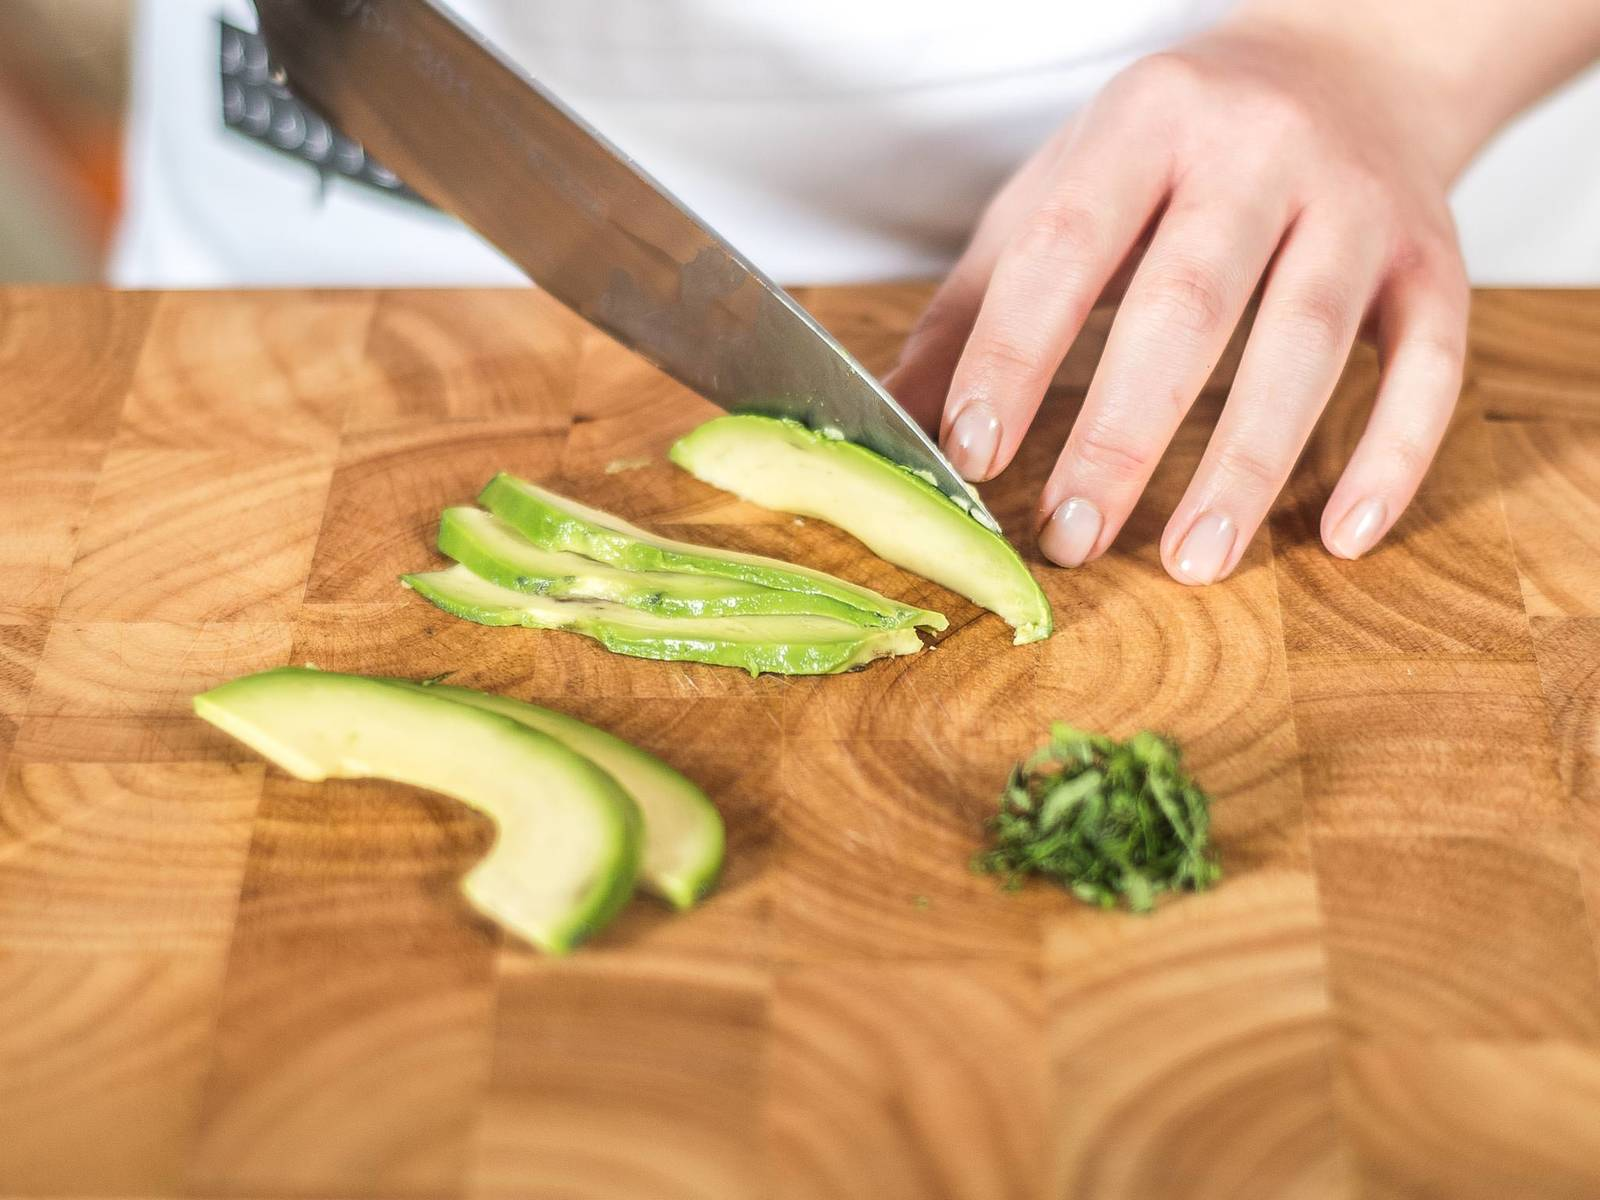 Finely slice mint. Quarter avocado, remove the pit, and cut into slices. Rub the slices generously with lemon juice to prevent them from browning.